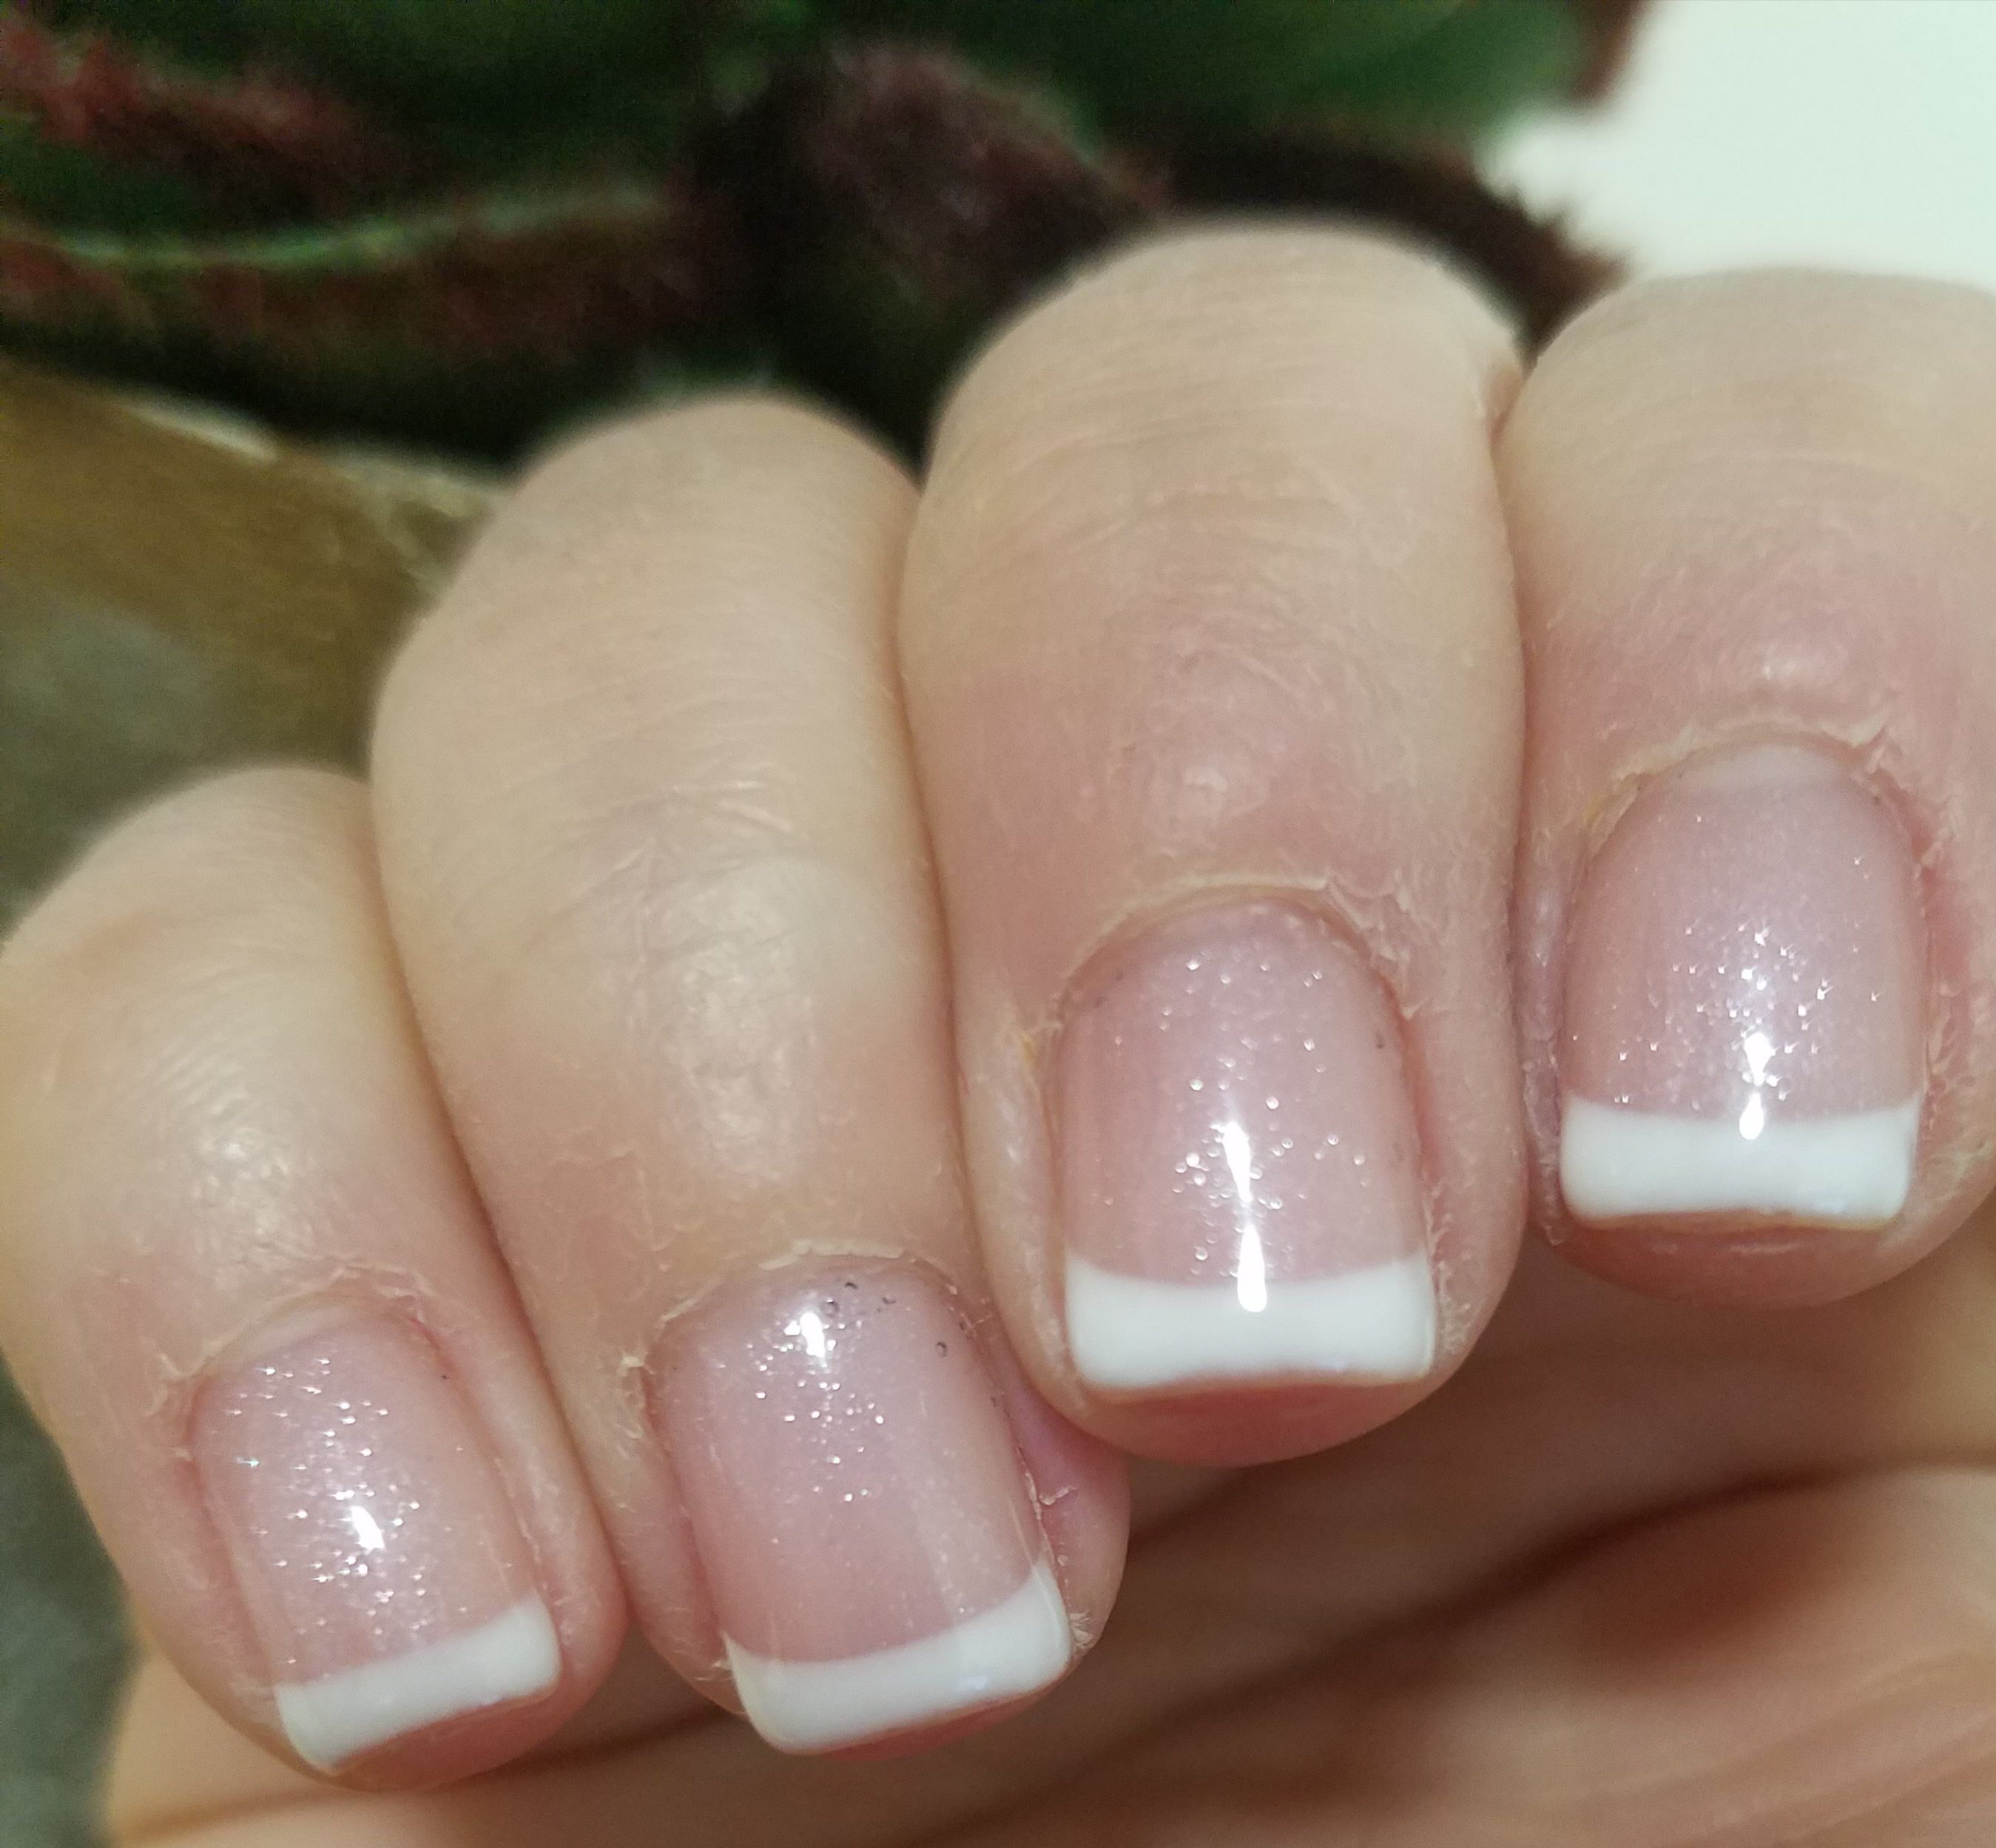 Nice Short Gel French Manicure Love The Touch Of Sparkle In The